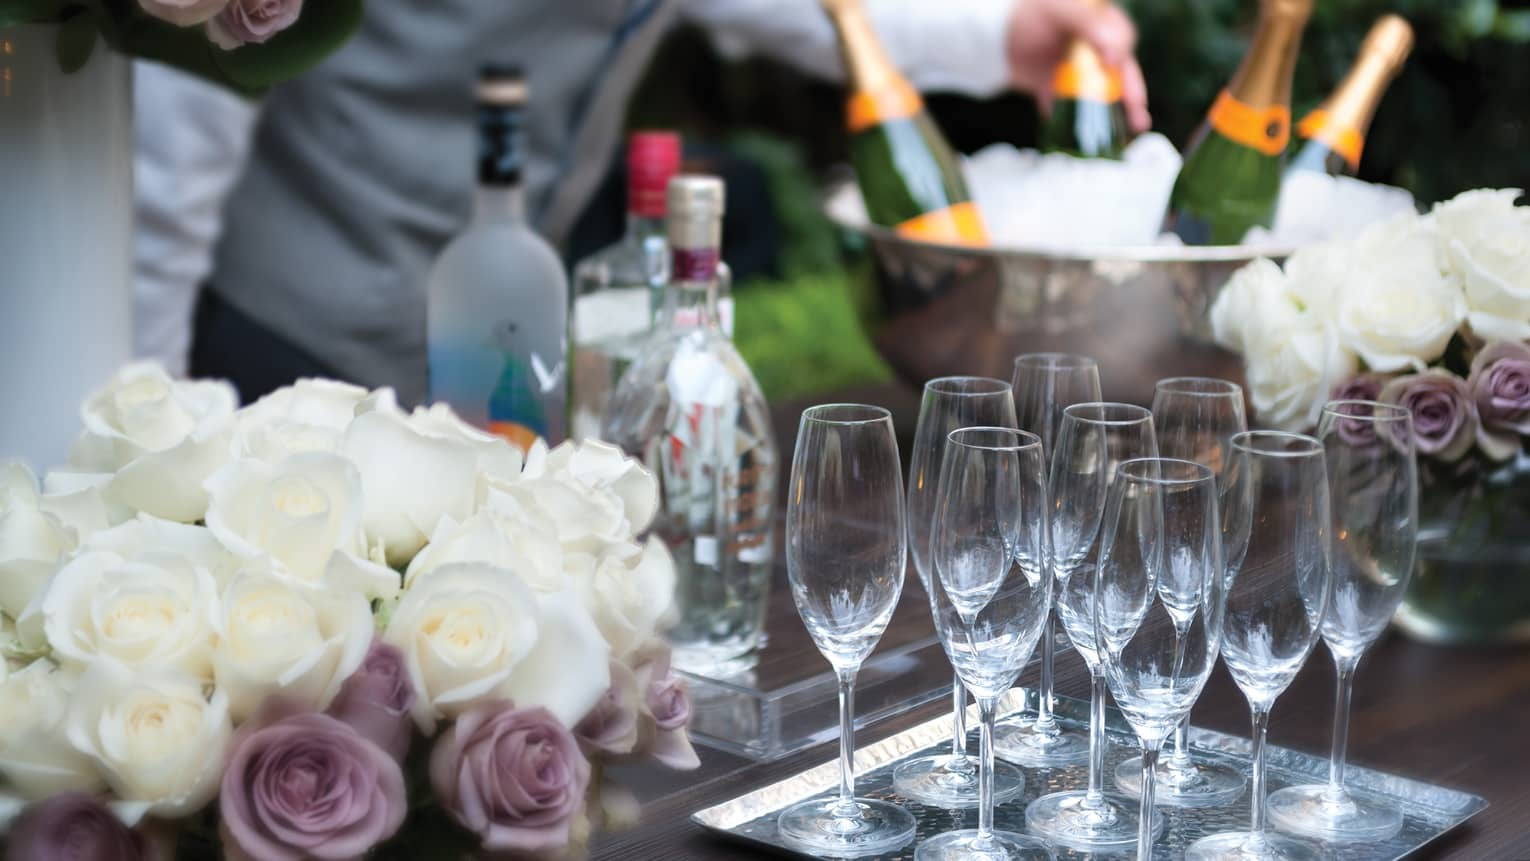 Close-up of white and purple roses, empty Champagne glasses on tray in front of ice bucket, bottles